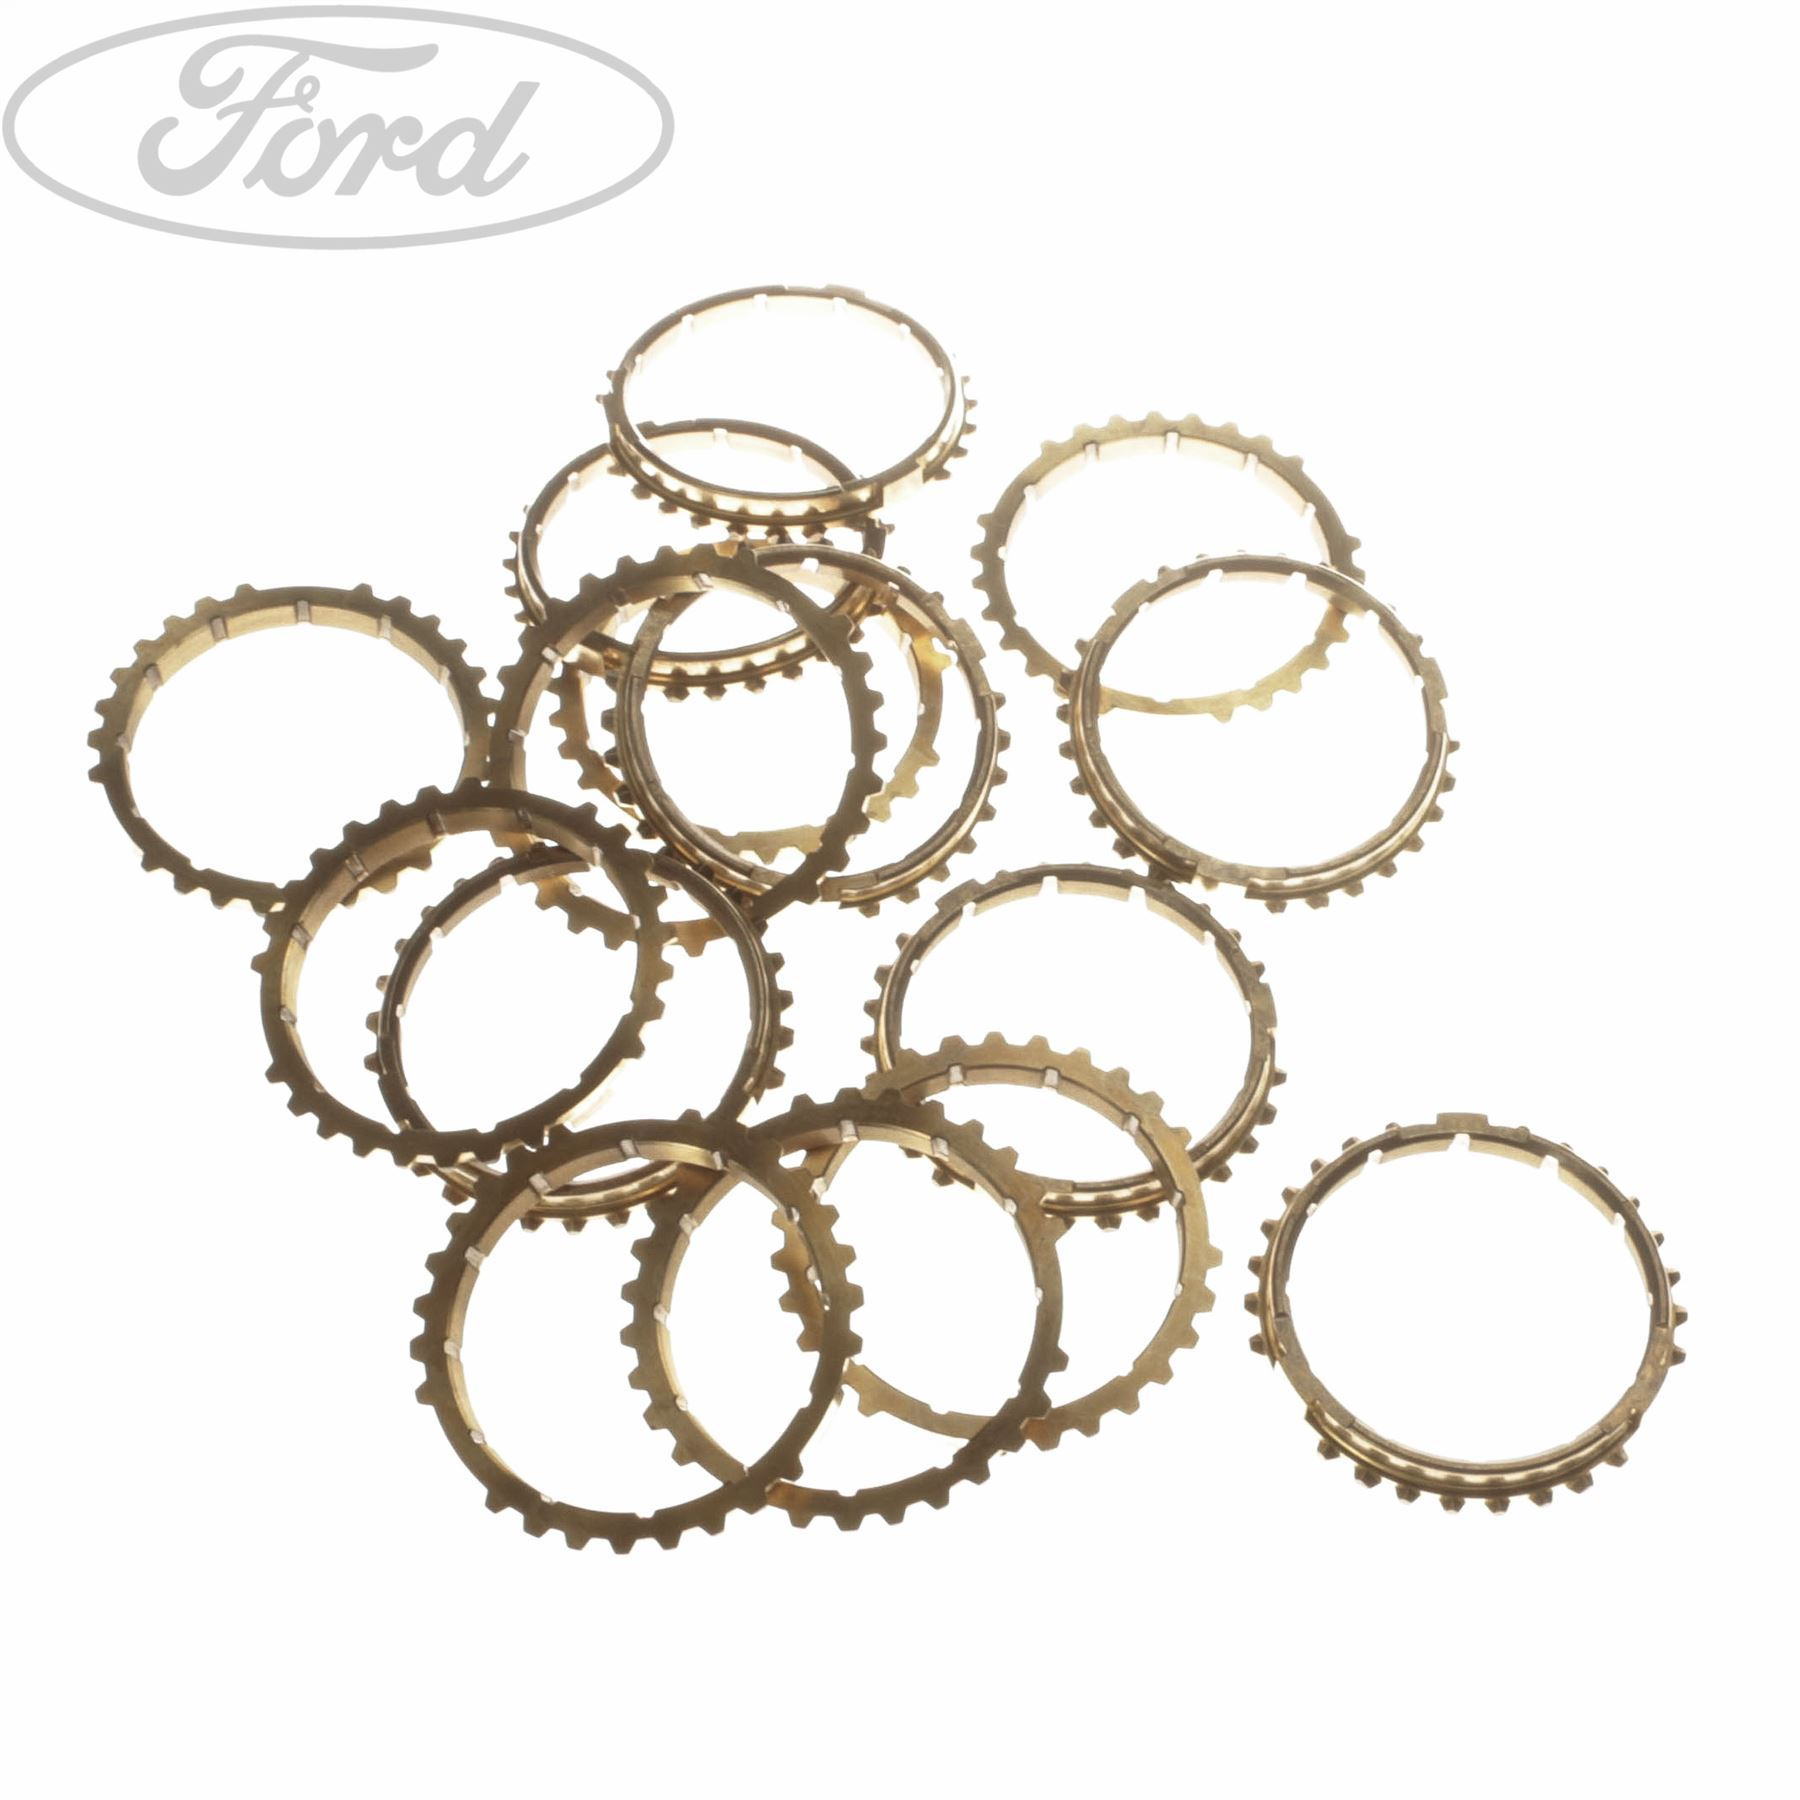 Genuine ford gearbox output shaft synchro ring 1086438